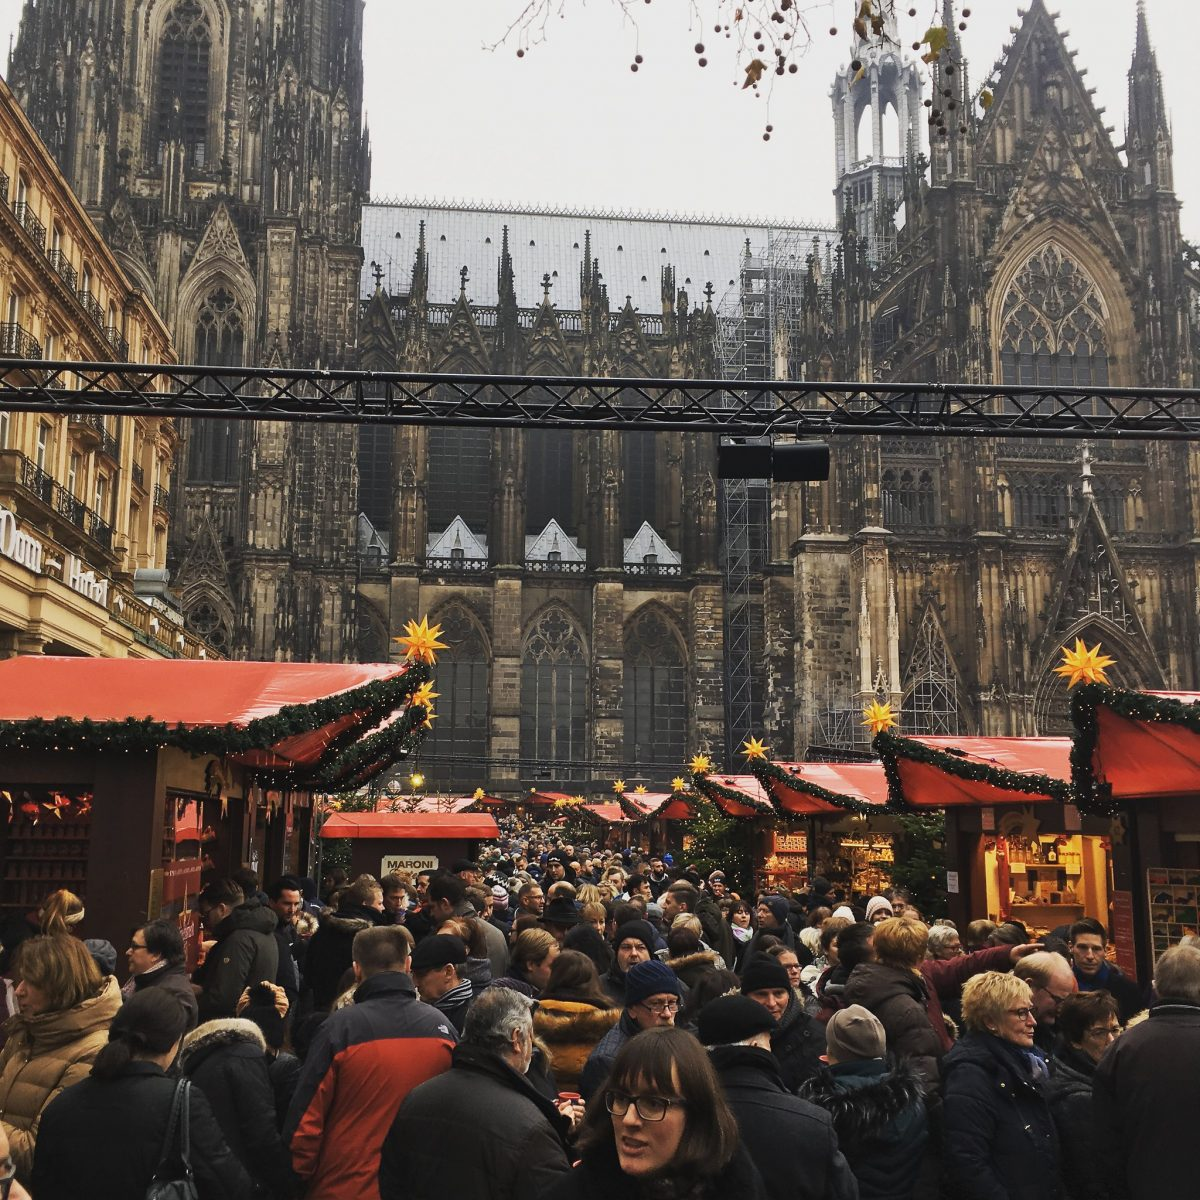 A mass of people walking around the Cologne Christmas Market with Cologne Cathedral in the background in Cologne, Germany